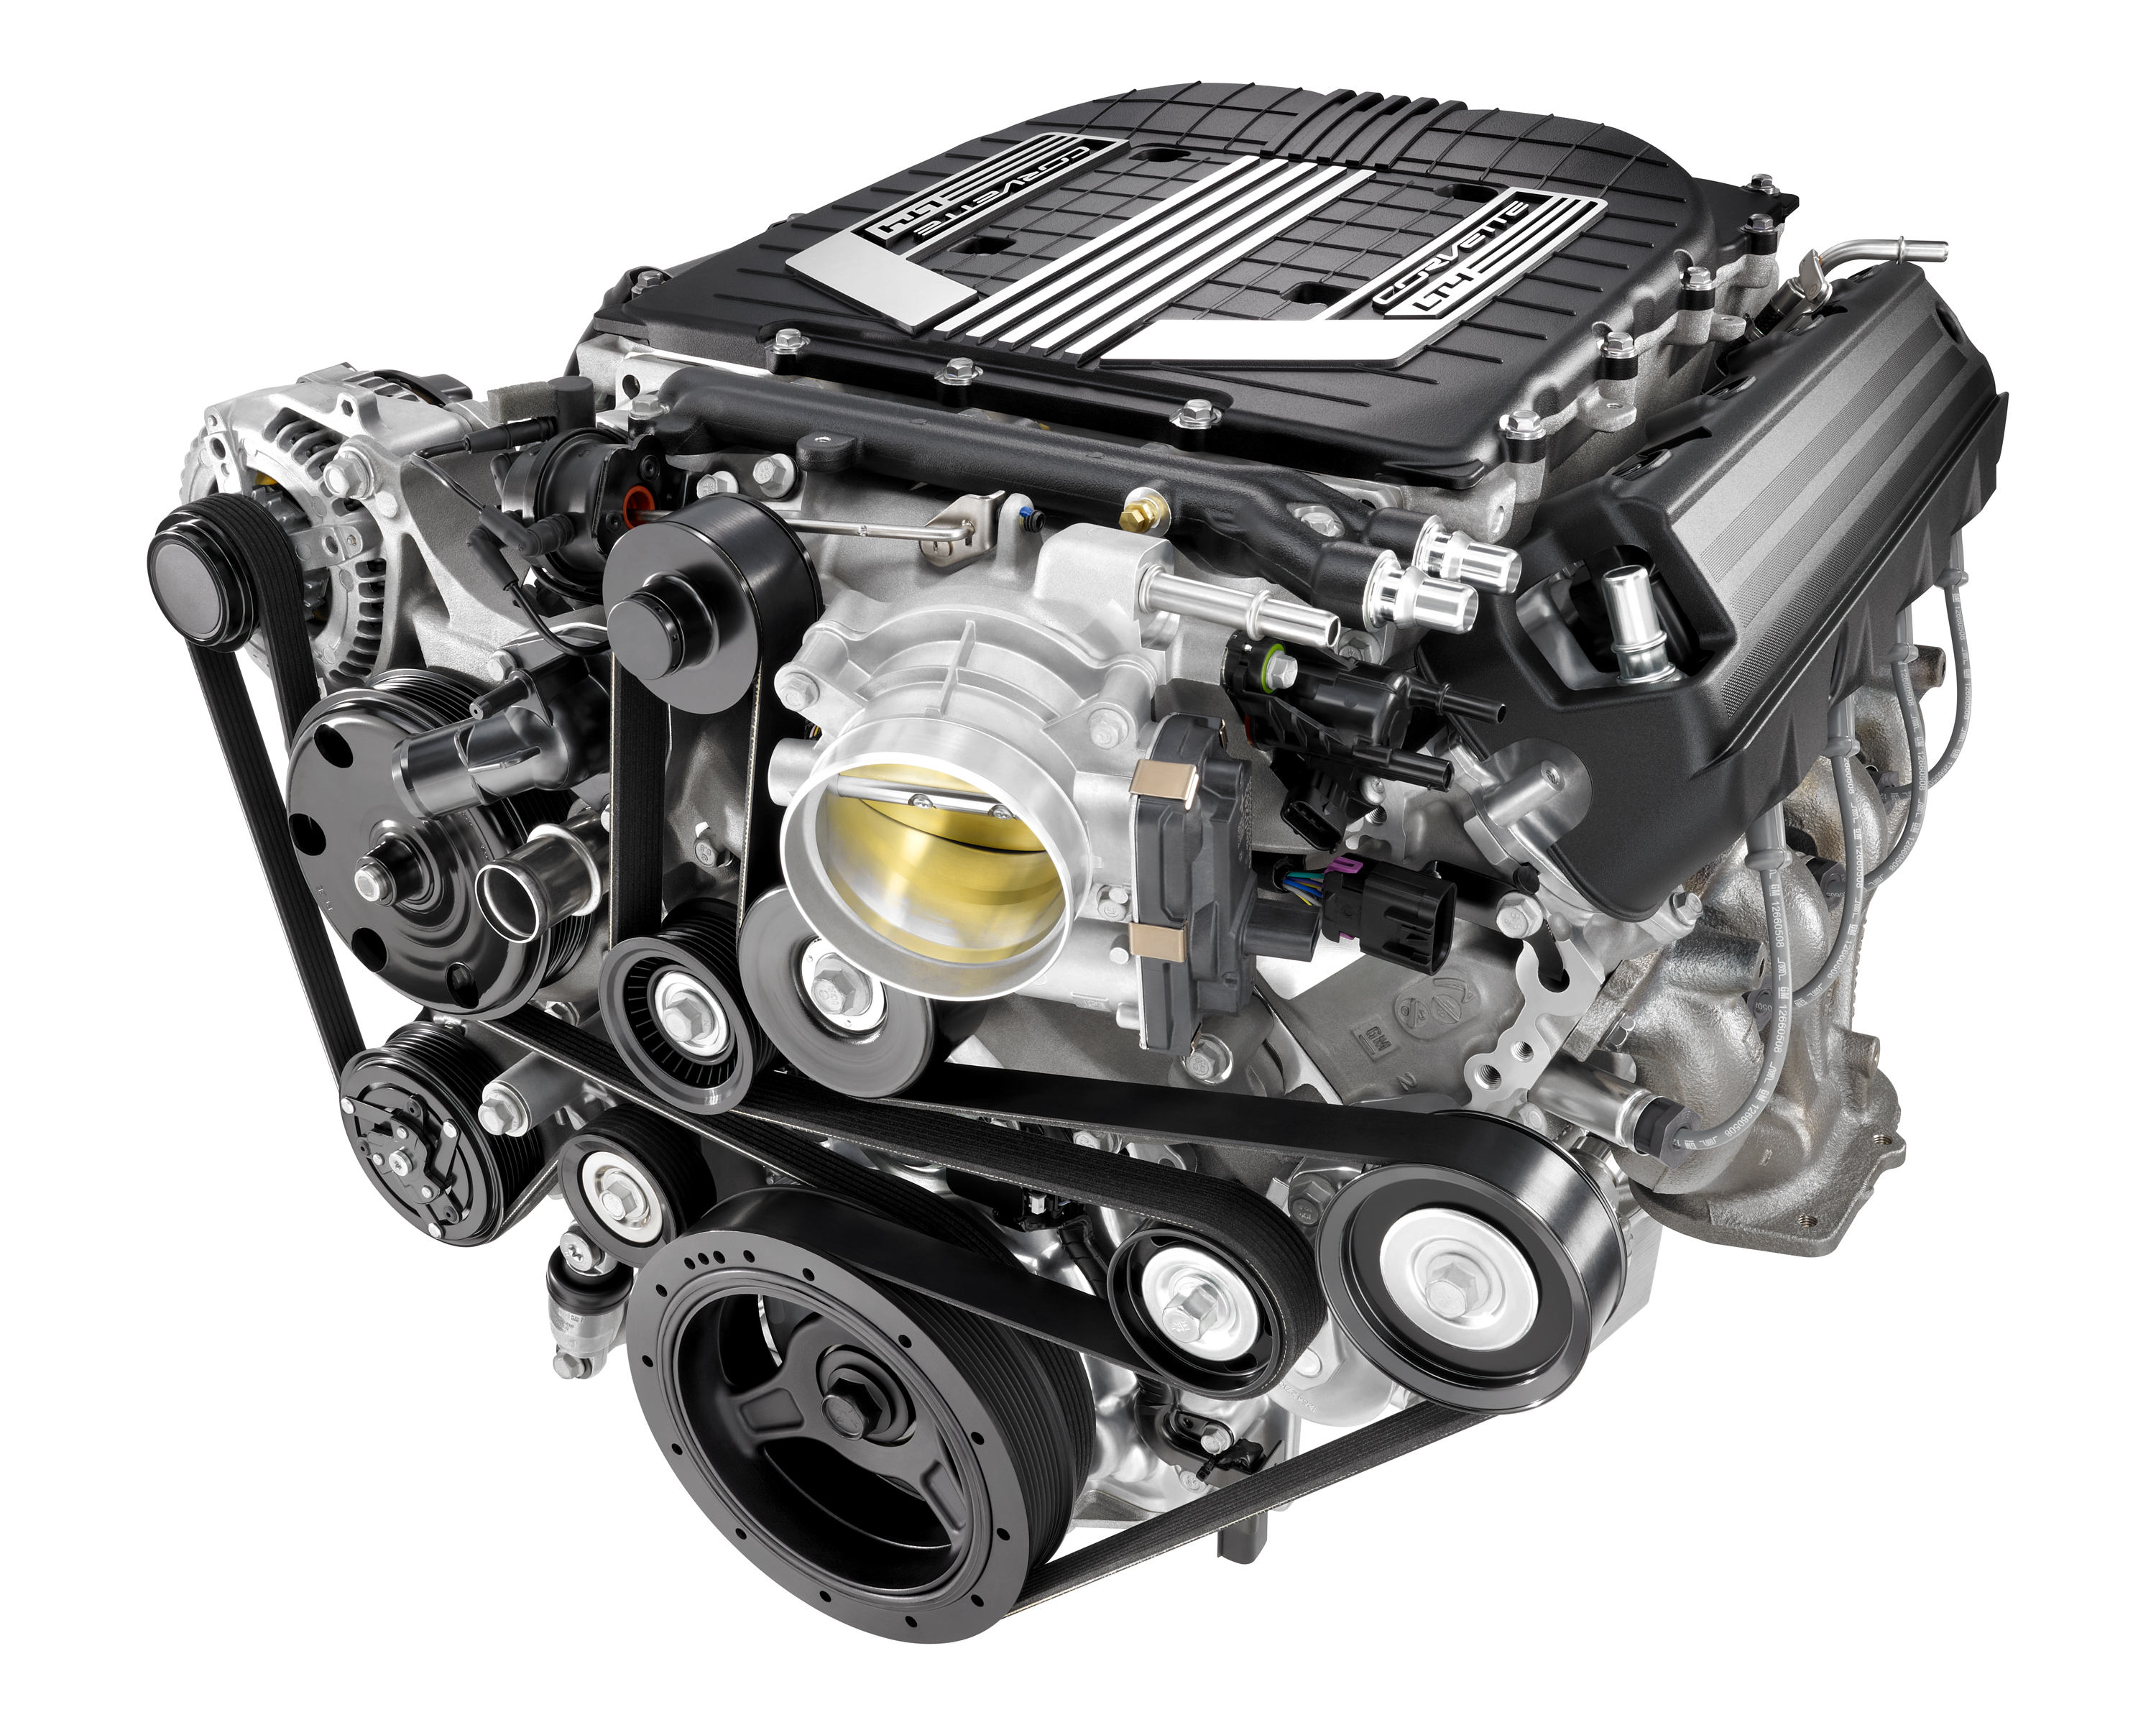 Compact Powerhouse: Inside Corvette Z06's LT4 Engine